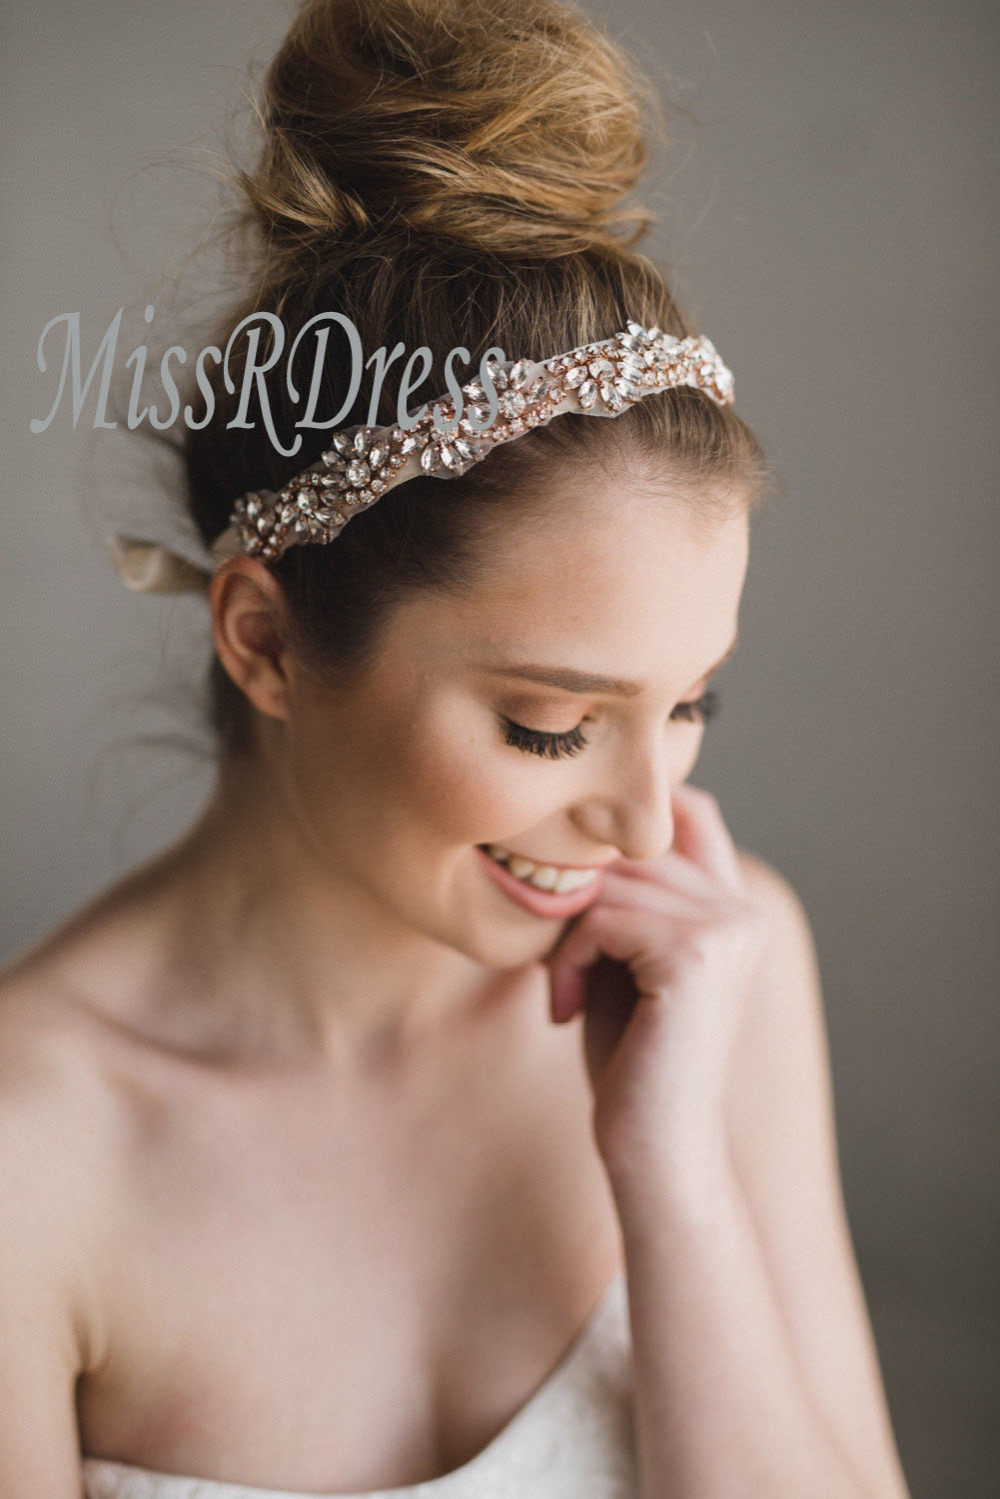 MissRDress Bridal Rhinestone Headband Beads Rose Crystal Wedding Headwear Bright Wedding headband Bridal headpiece ys816